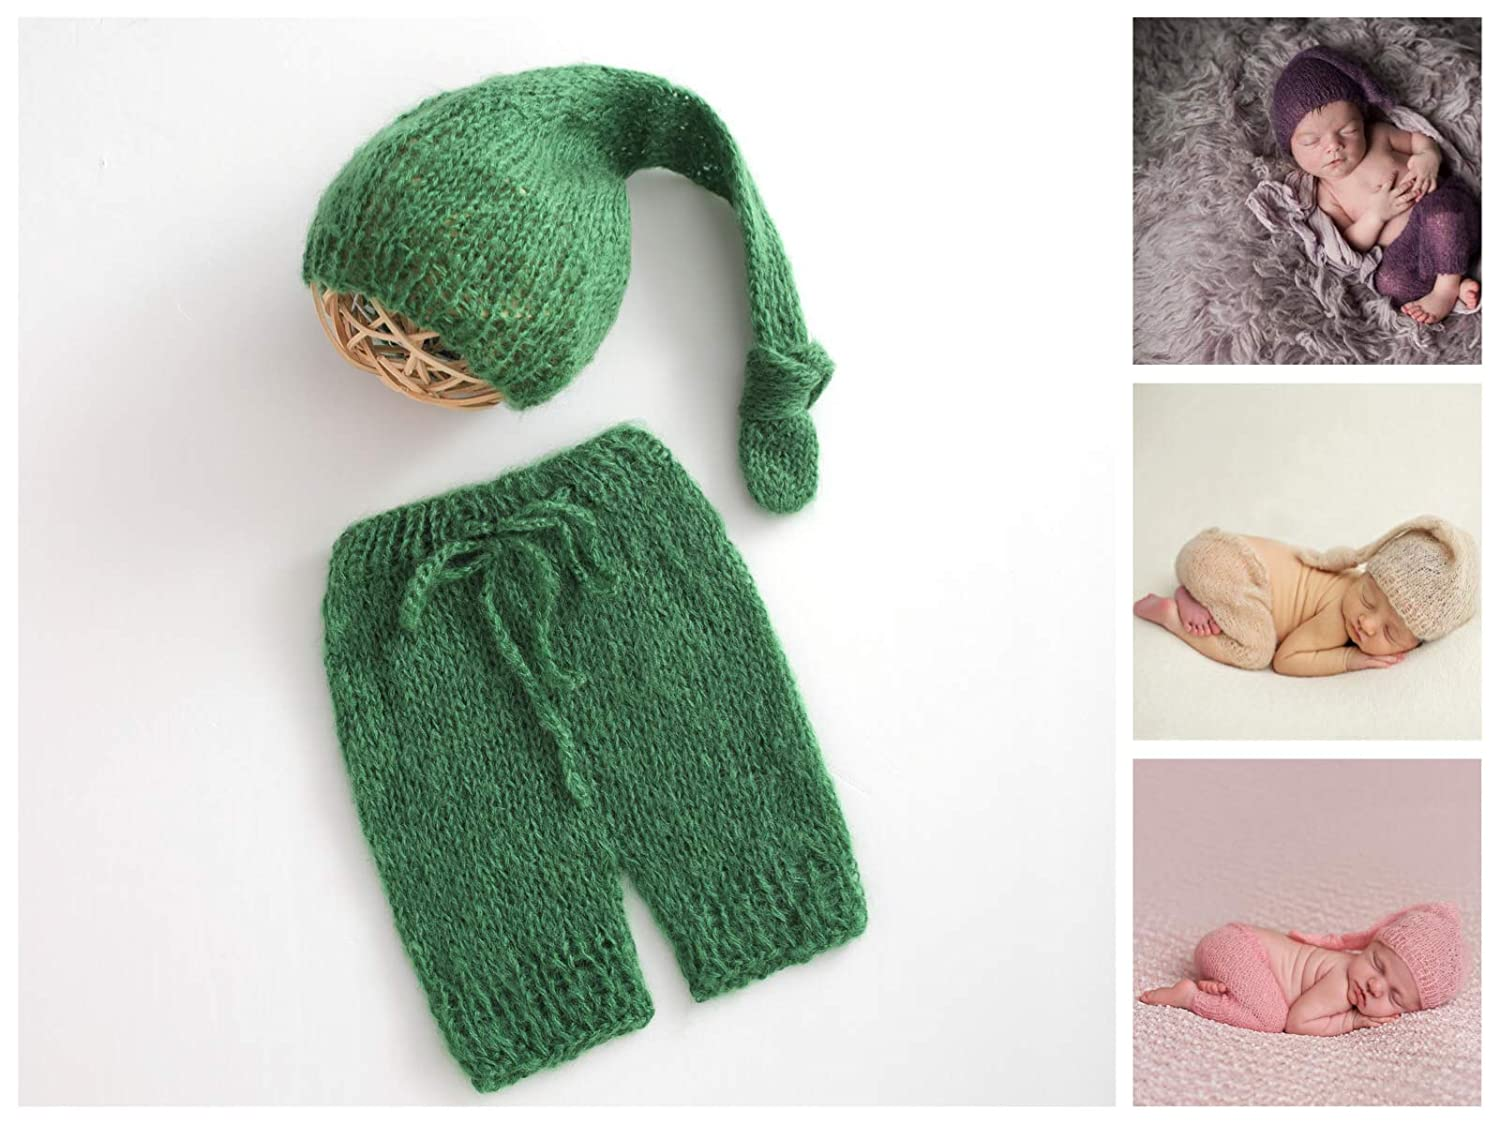 ARLAYO Newborn Photography Props Wool Hand-Knitted Hat and Pants Outfits Green